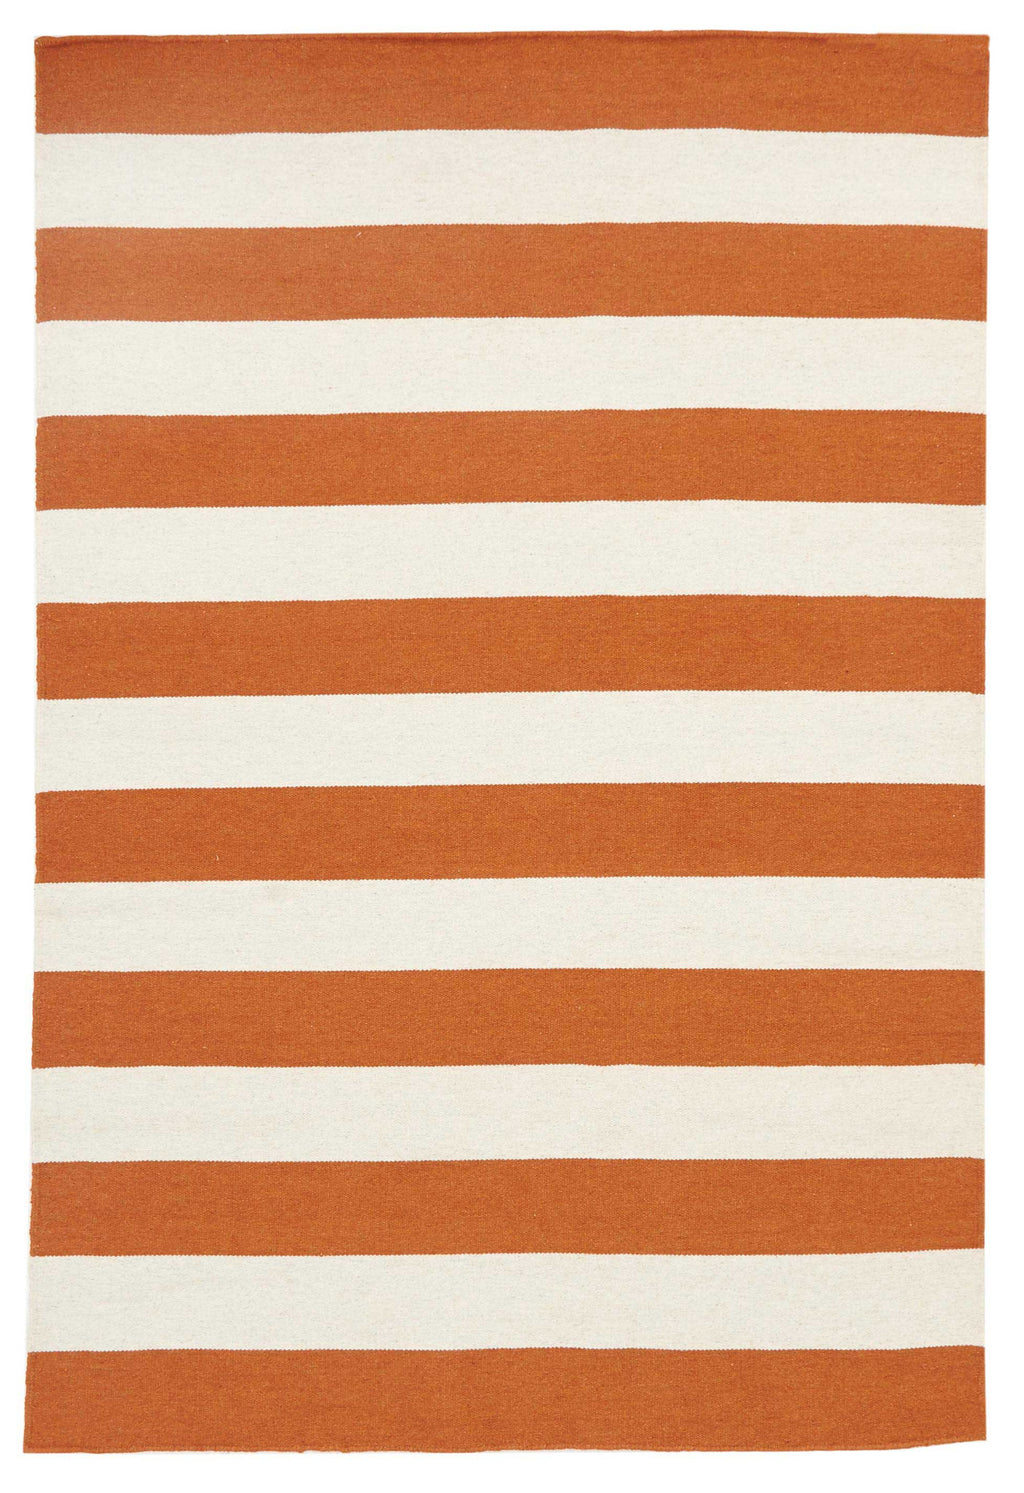 Rio Flat Weave Stripe Orange White Rug